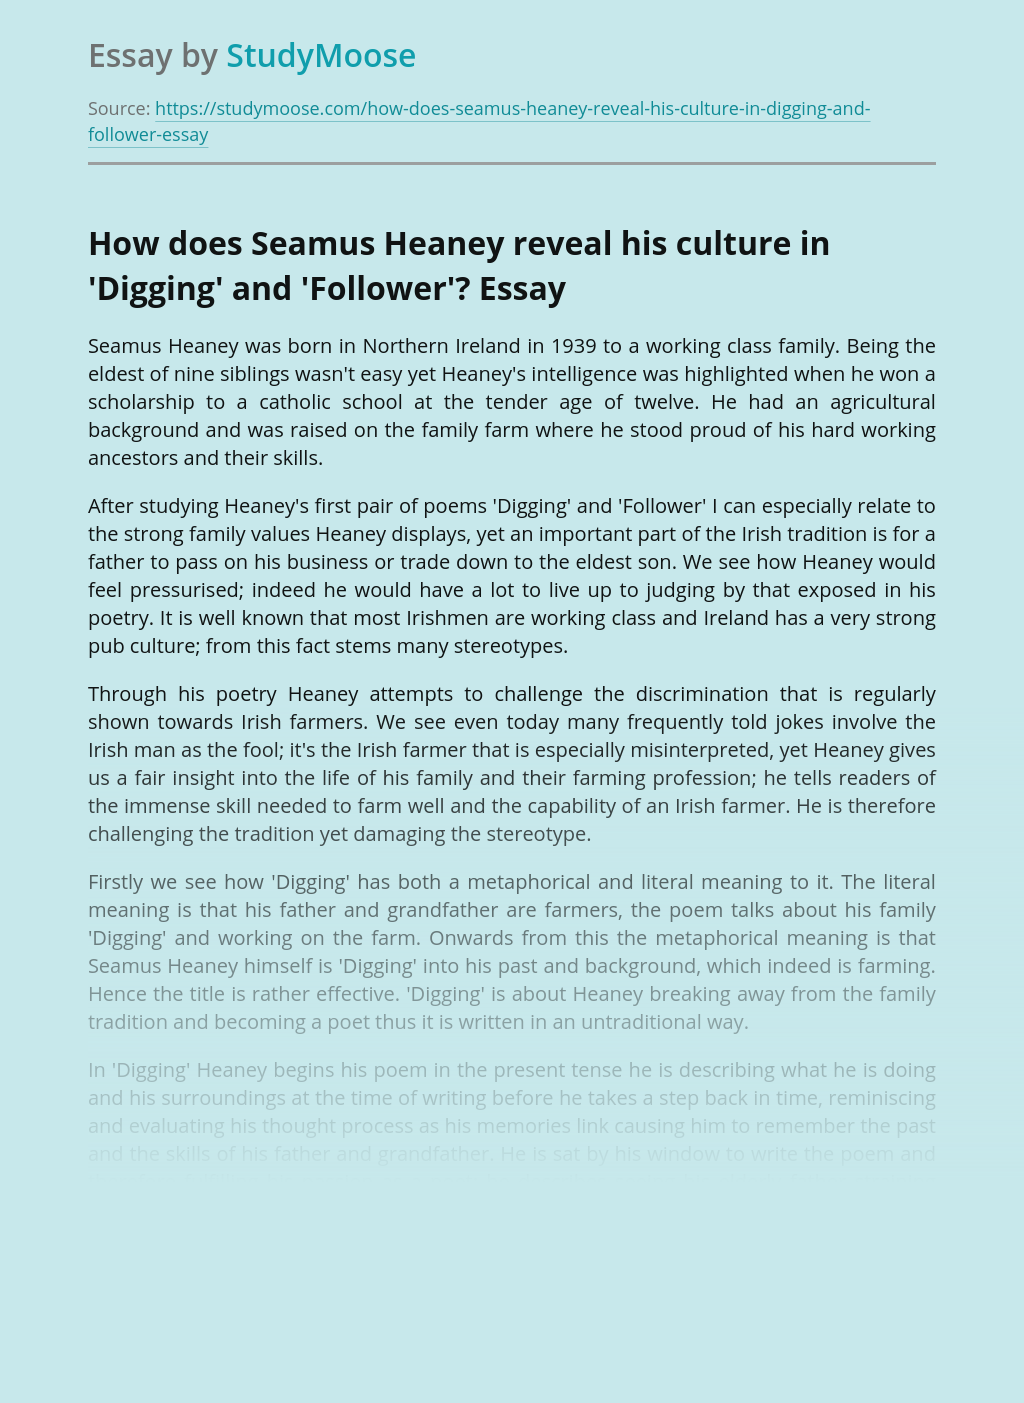 How does Seamus Heaney reveal his culture in 'Digging' and 'Follower'?